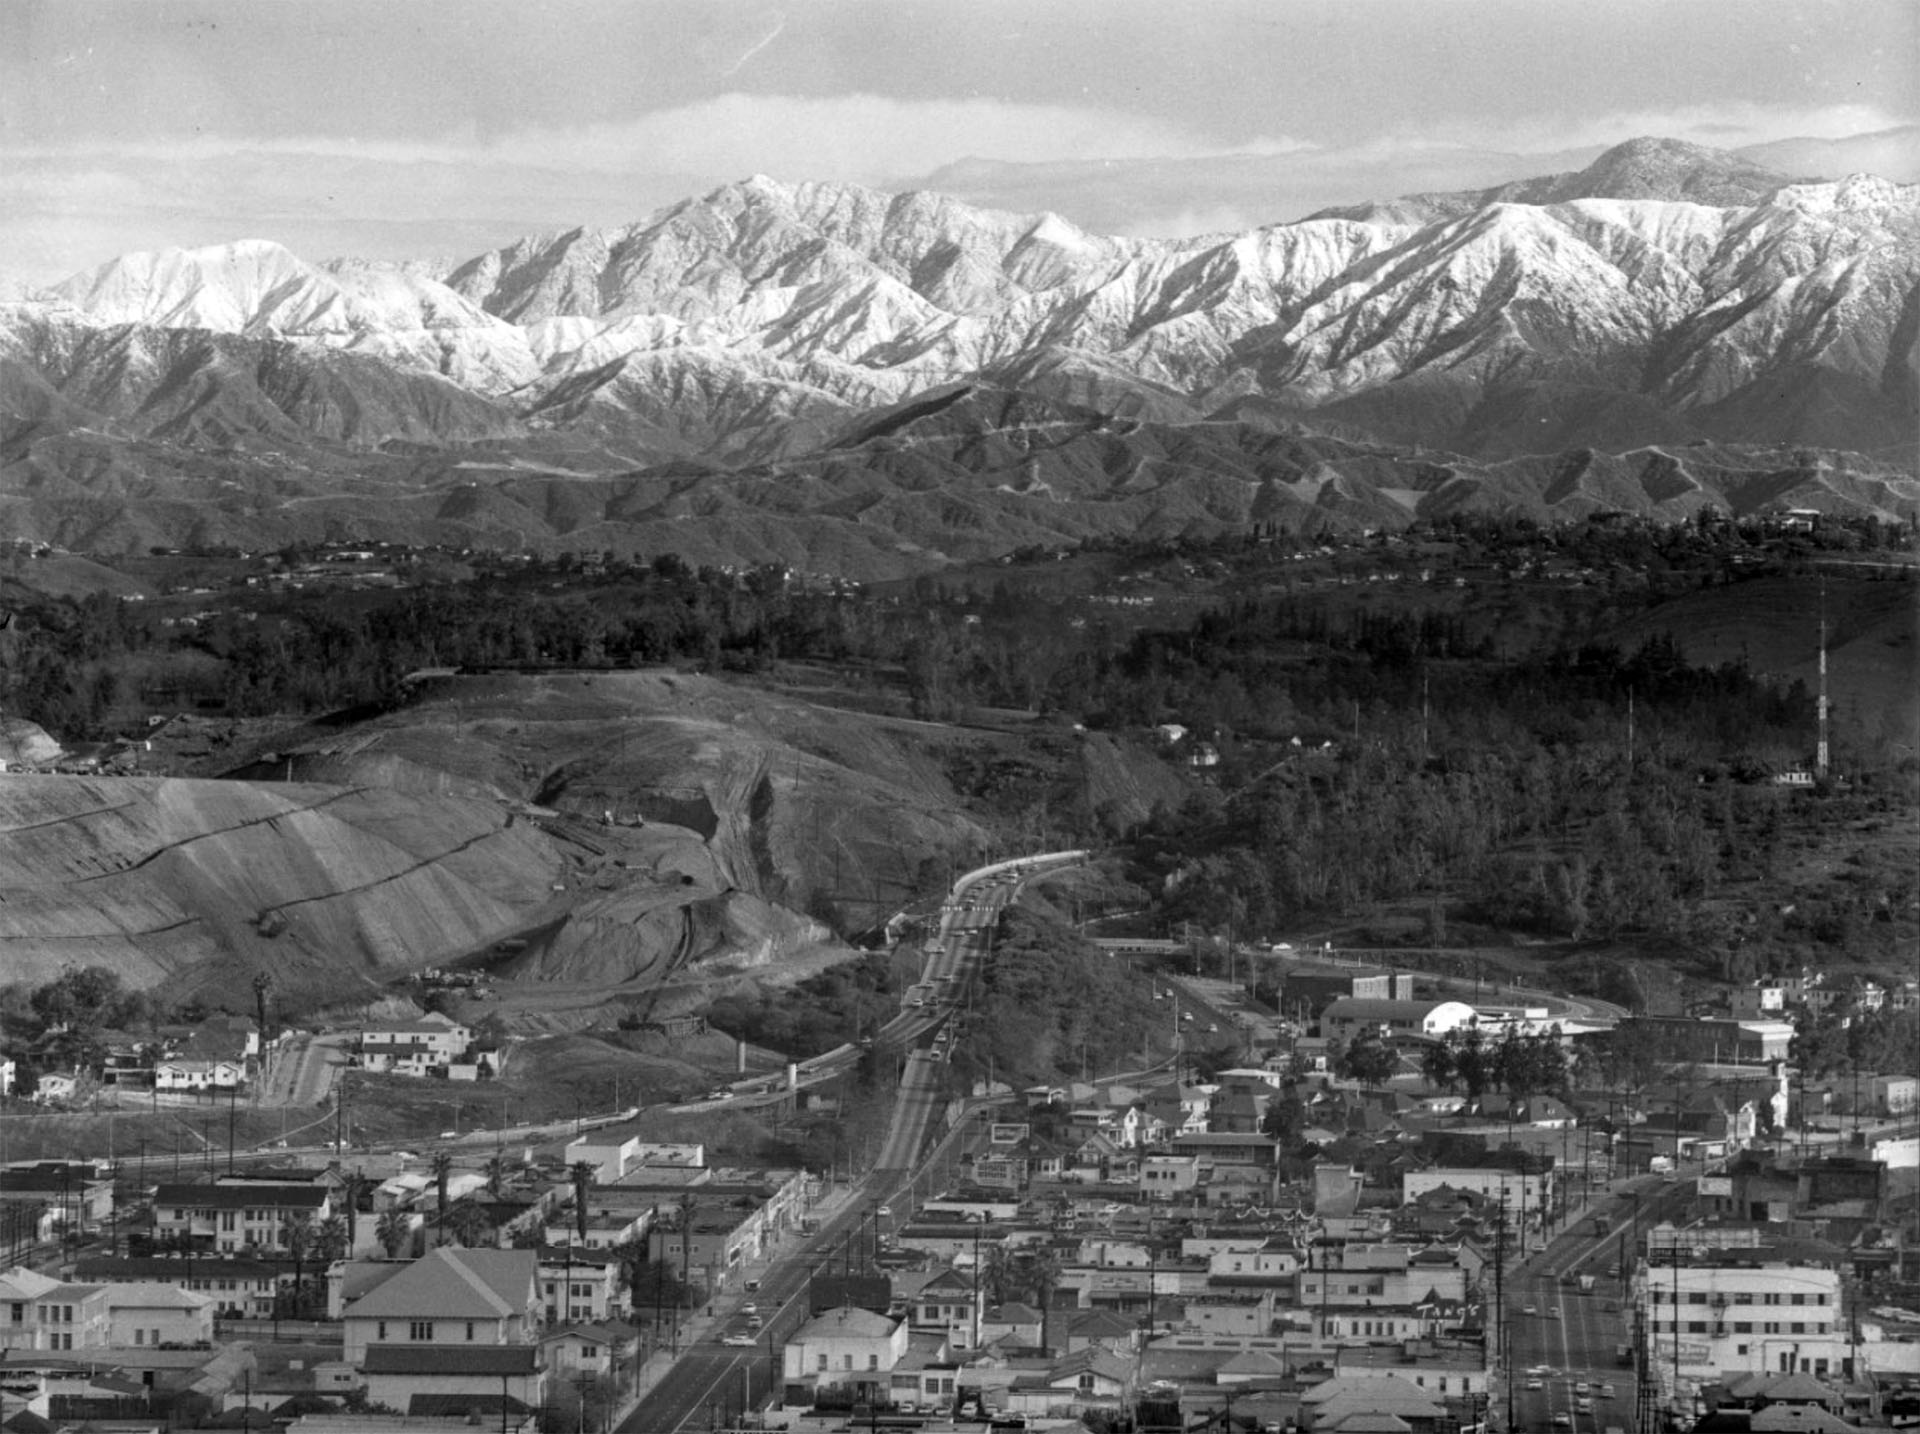 dodger_stadium_excavation_with_mountains_1962_ucla-thumb-600x457-61707.jpg